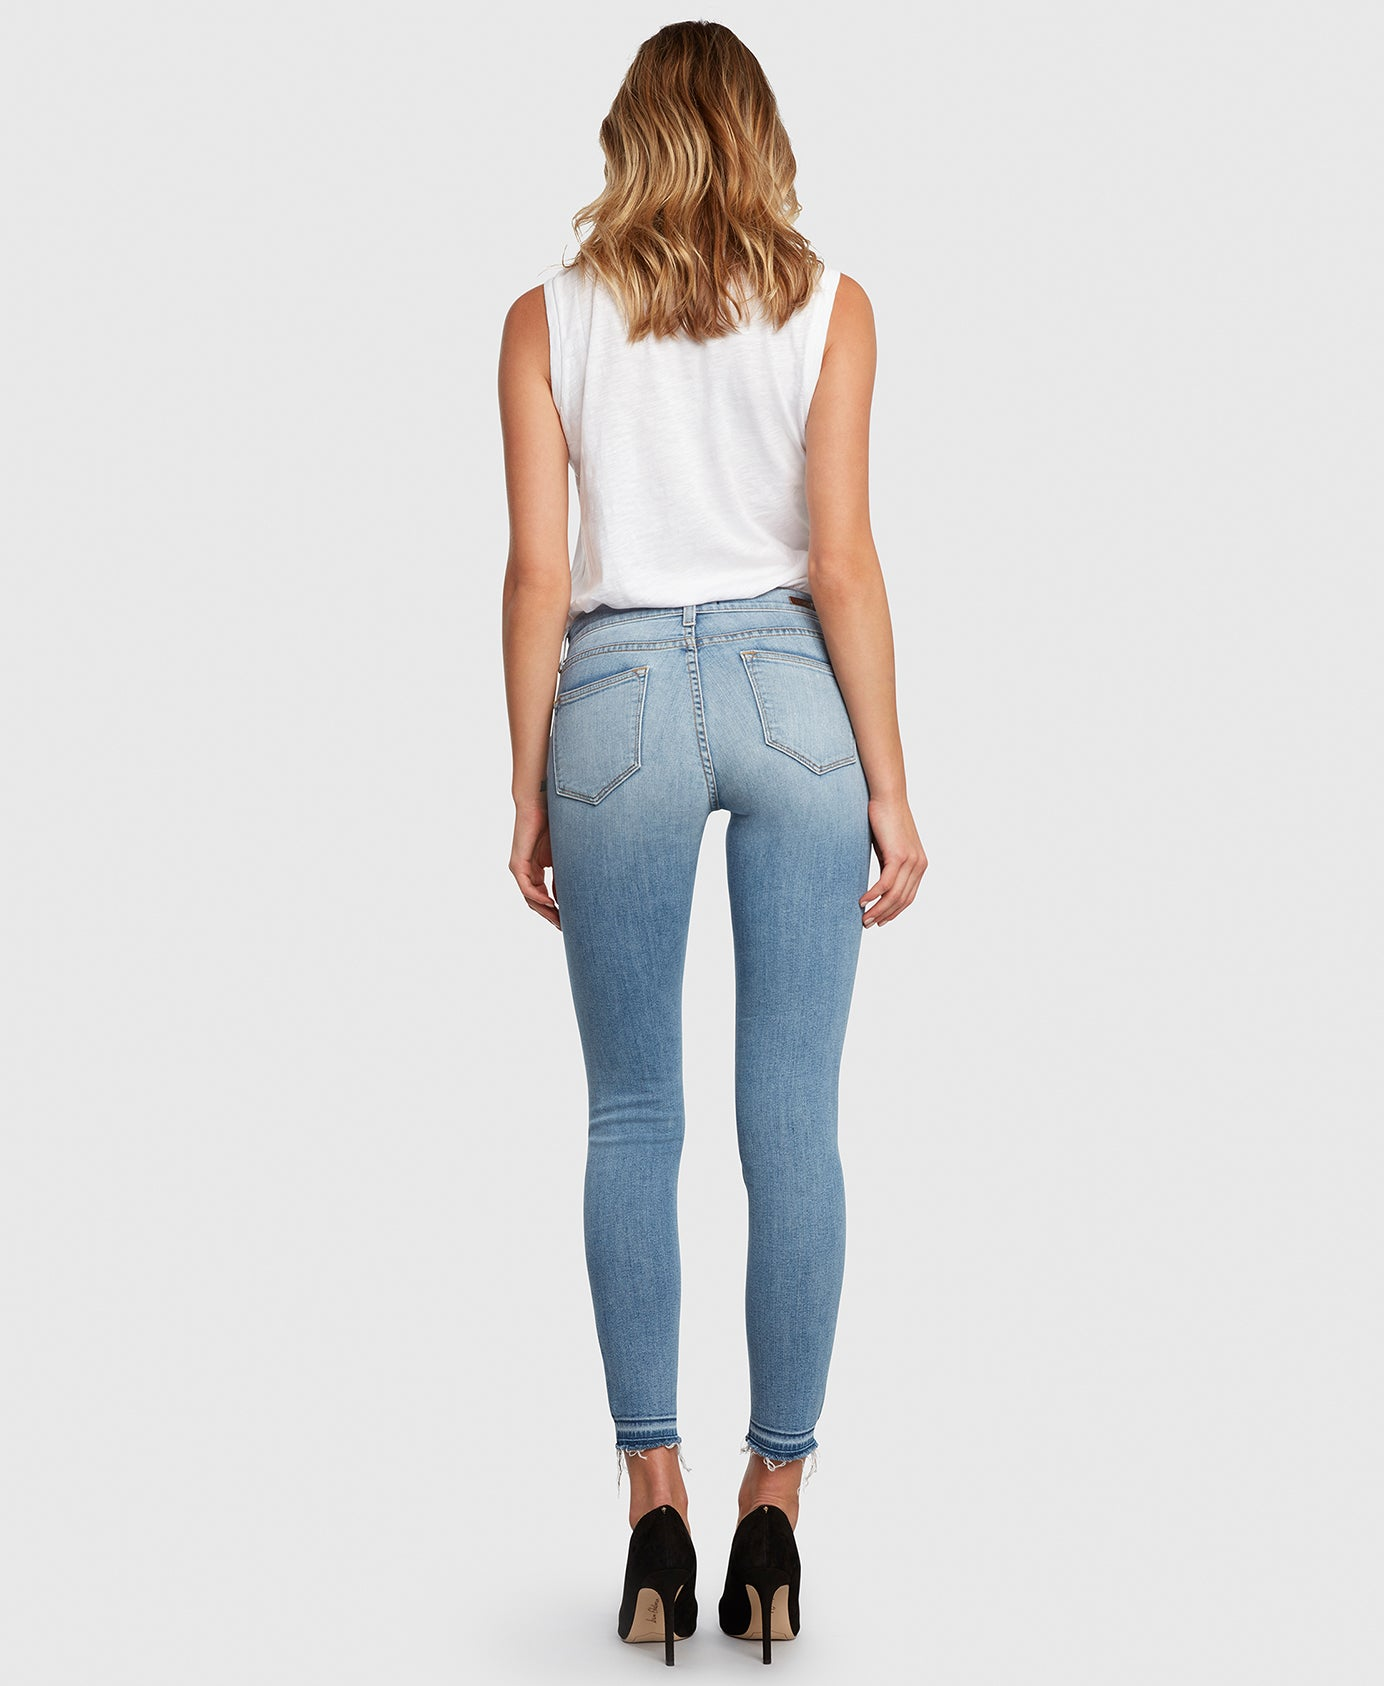 Principle DREAMER in Walk the Line center seam light wash skinny back